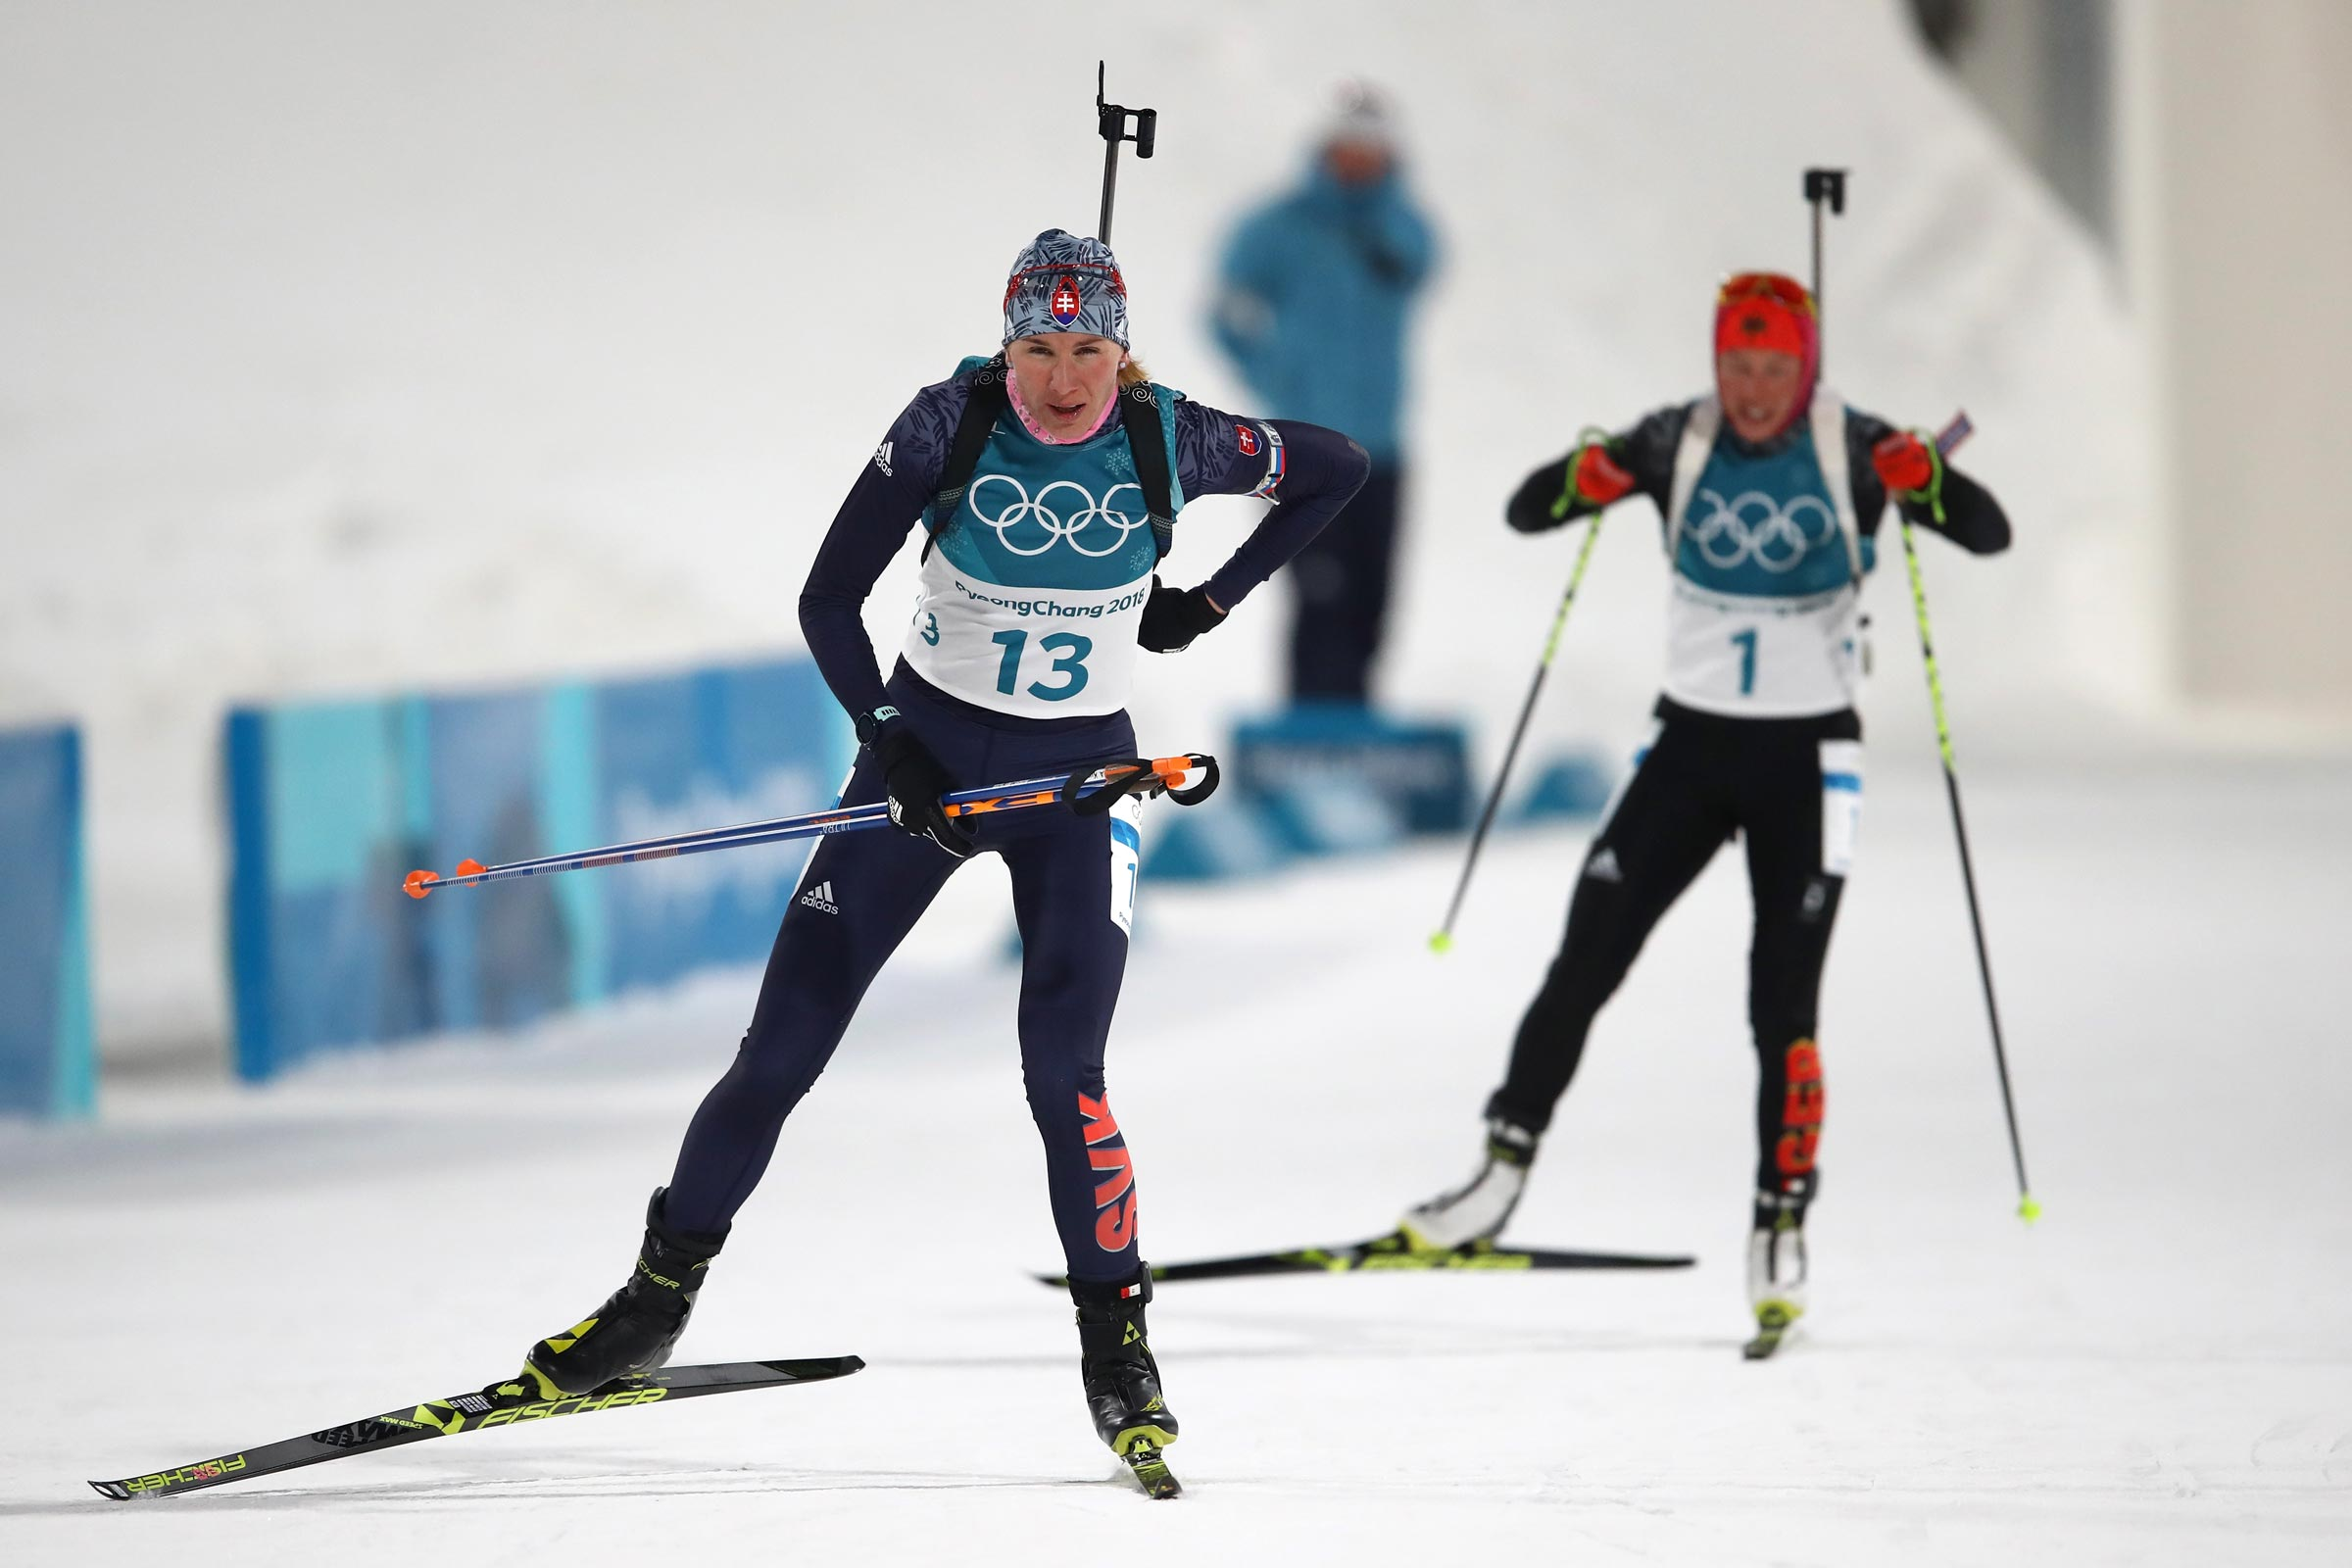 Biathlon - 10km Pursuit Women